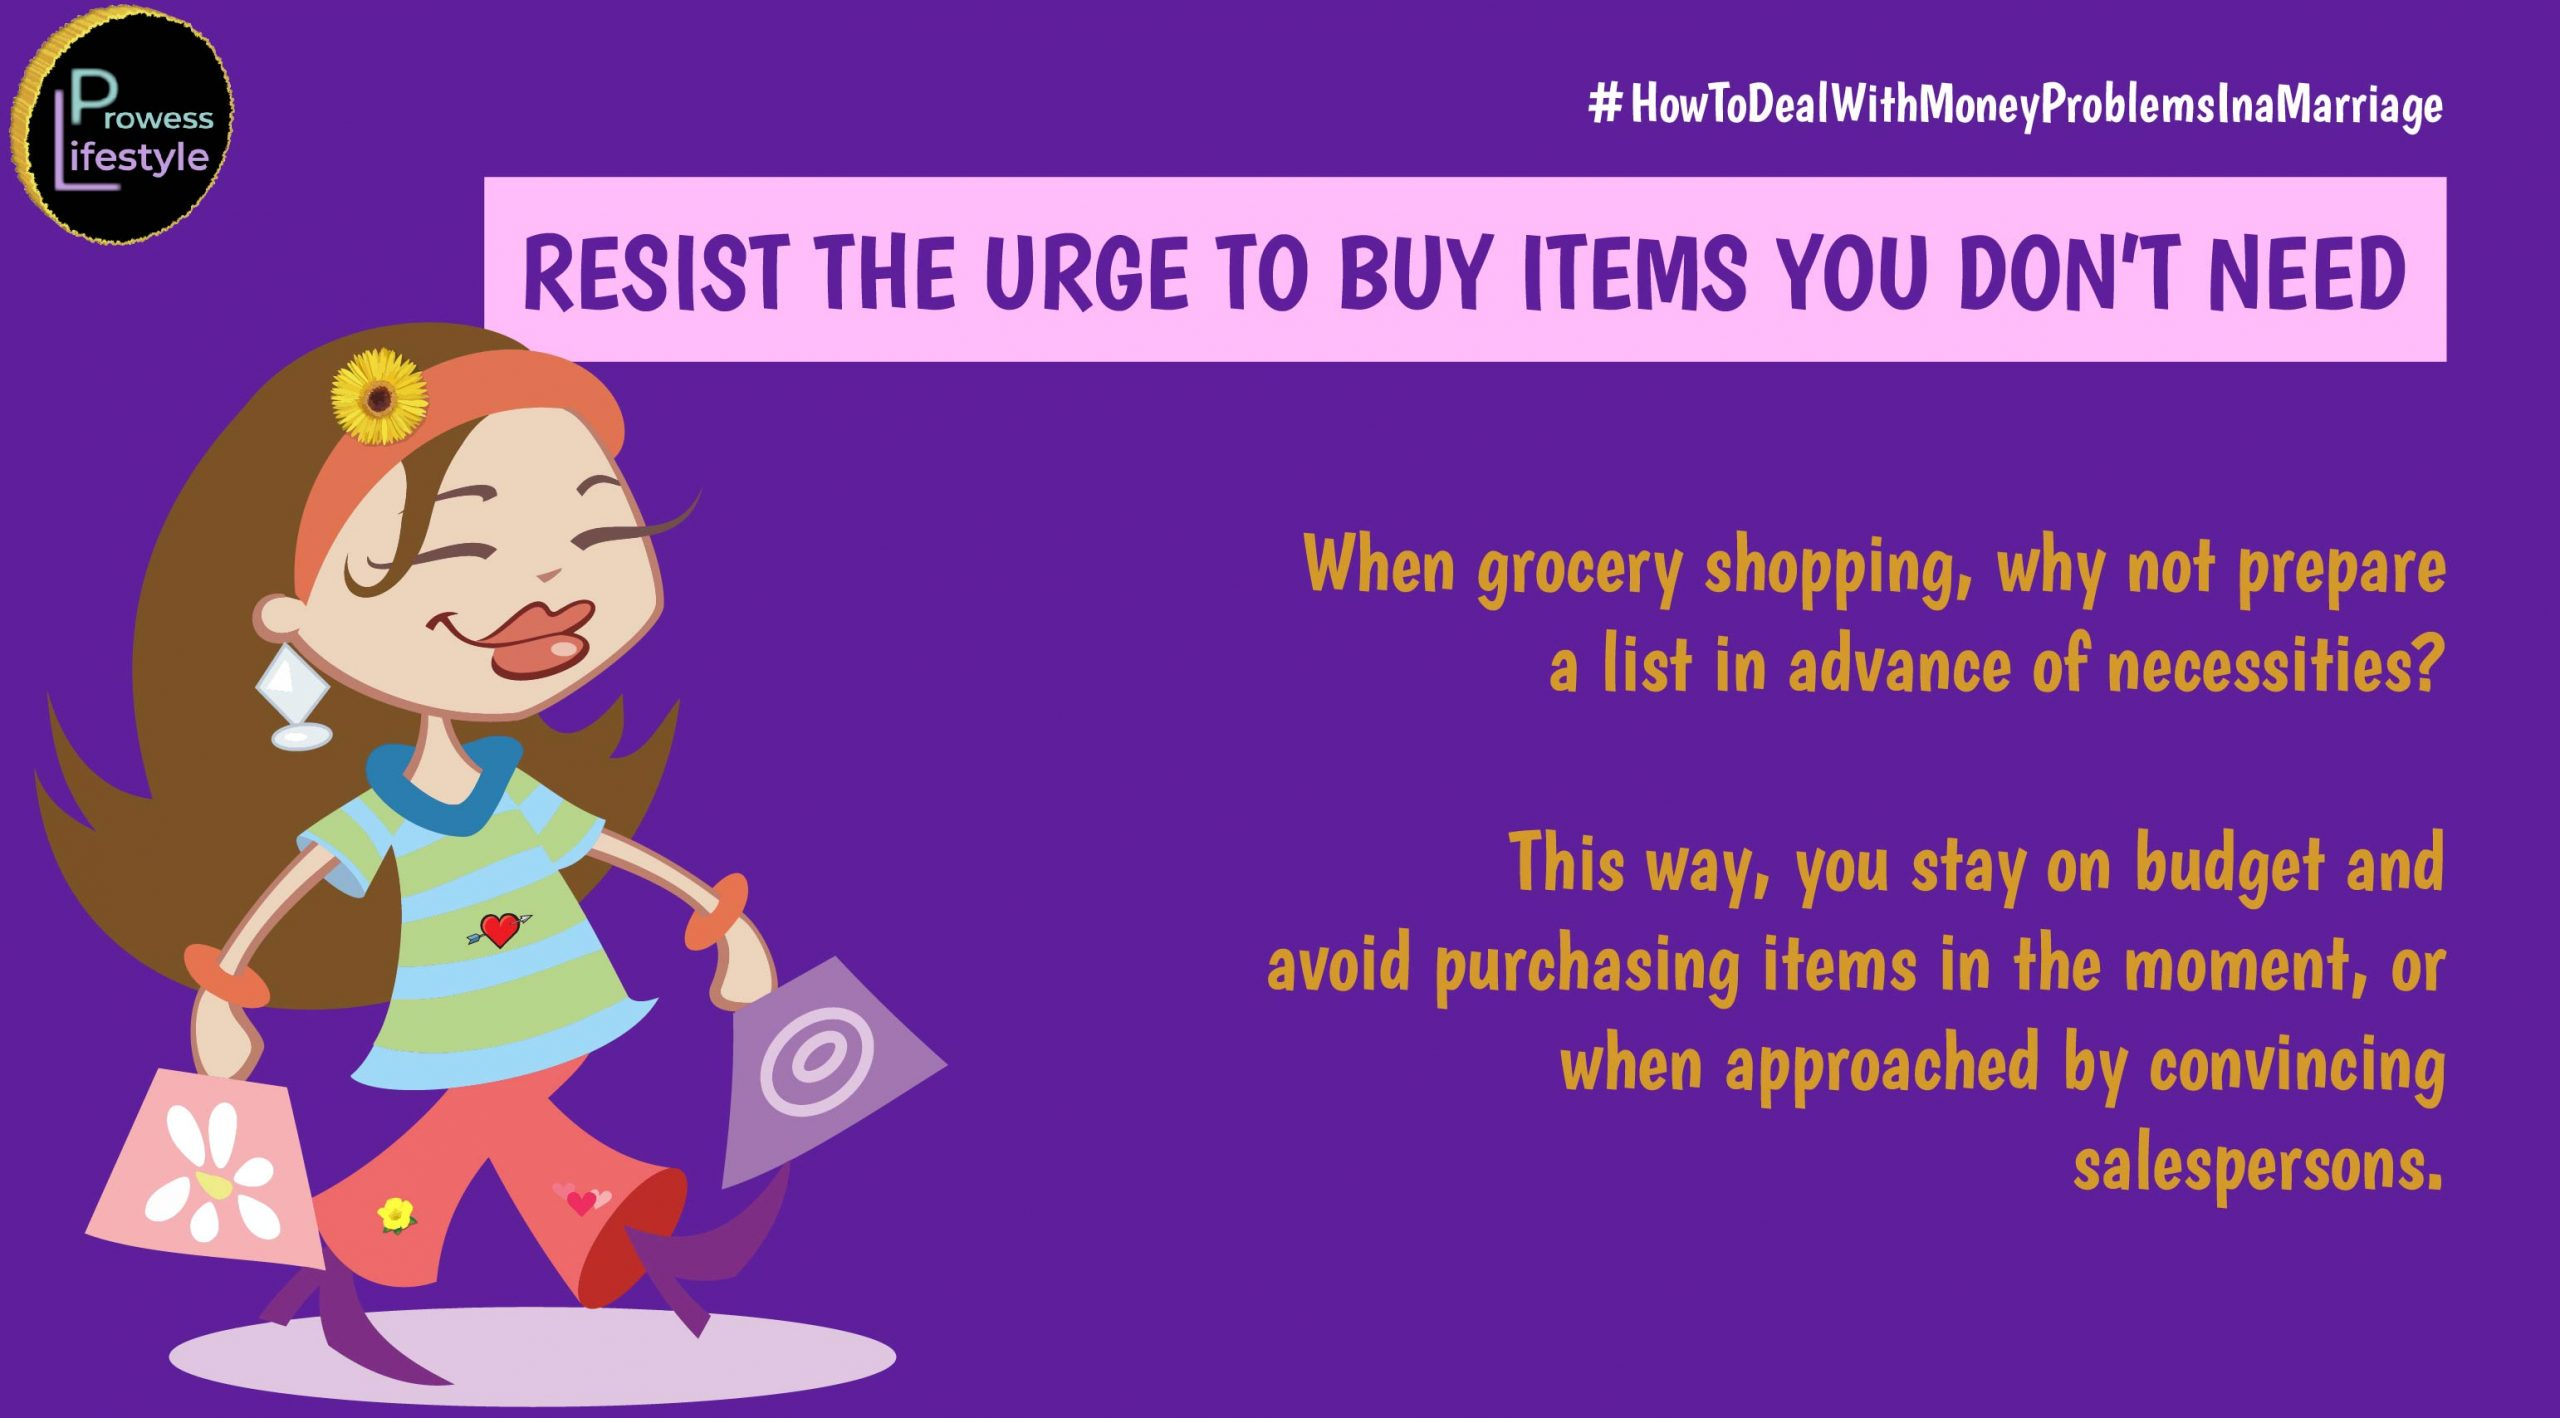 RESIST THE URGE TO BUY ITEMS YOU DON'T NEED